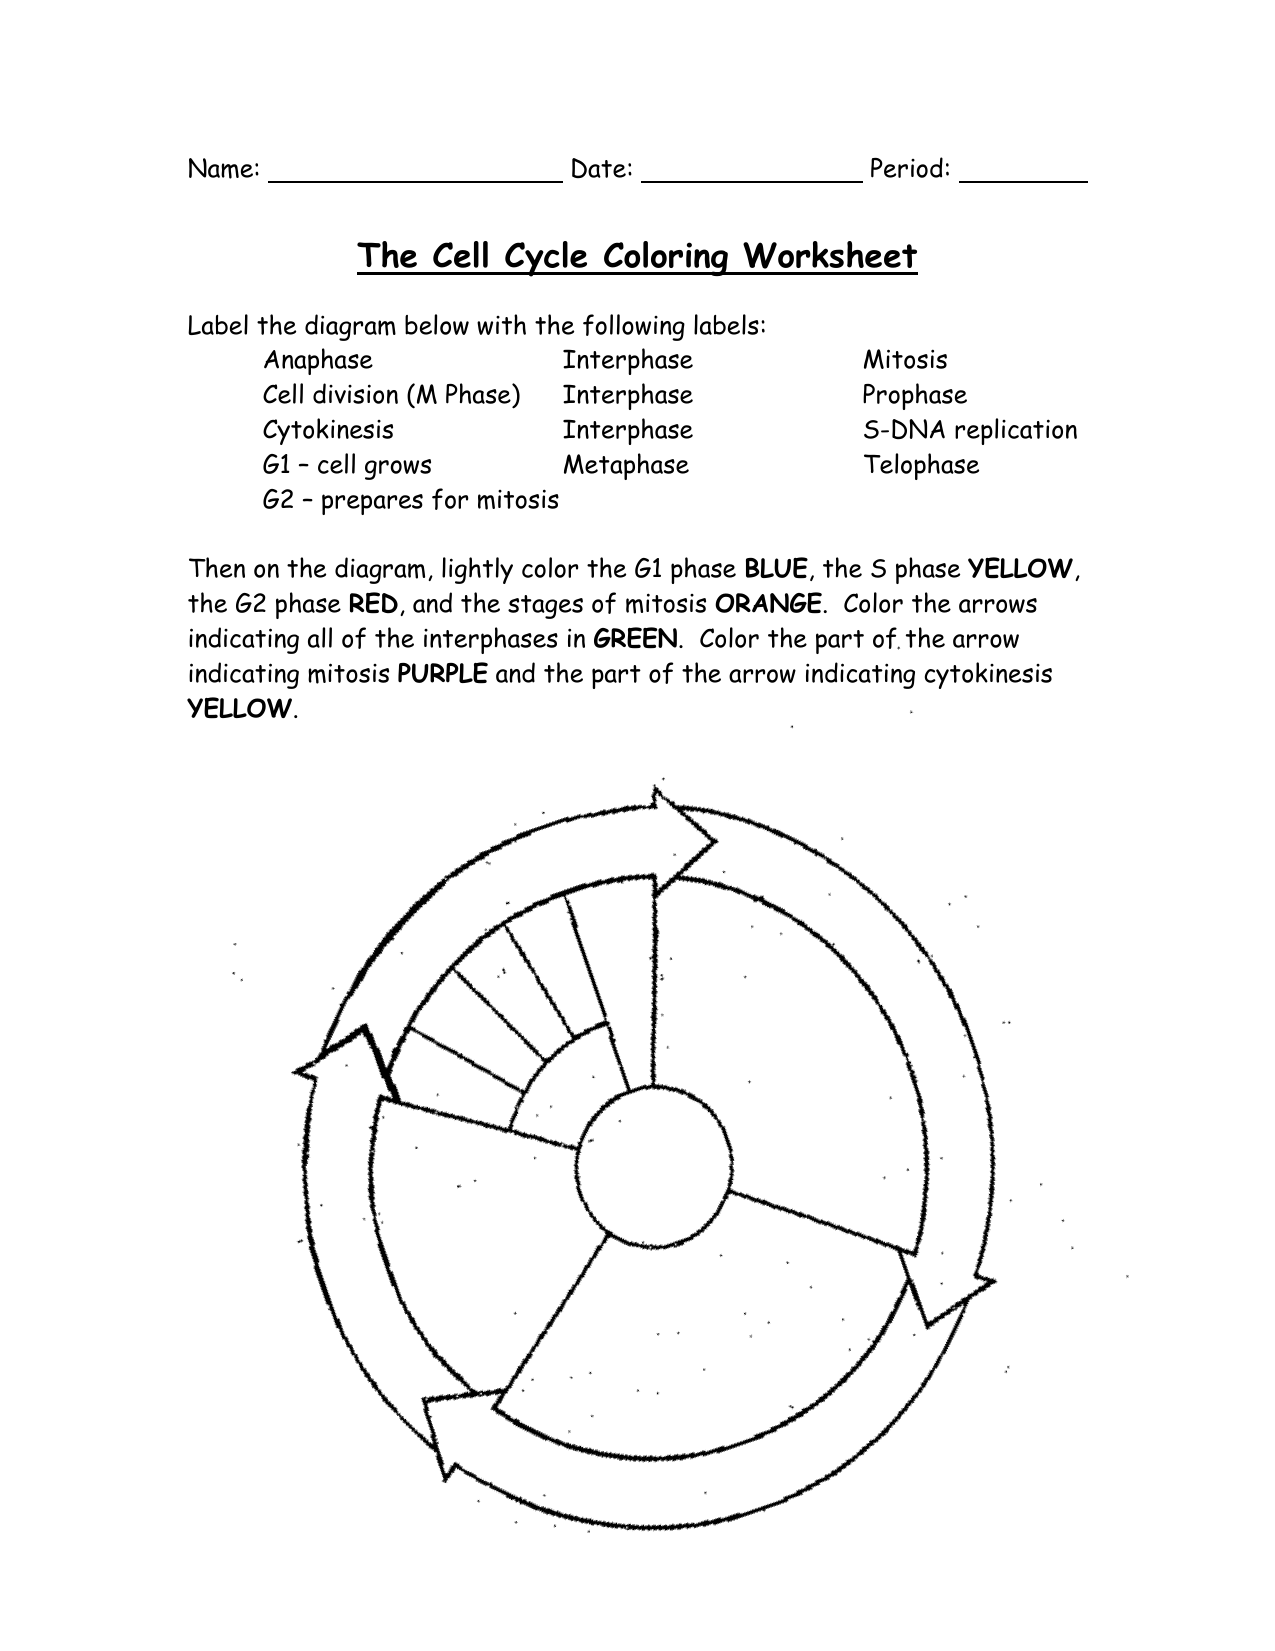 Worksheets The Cell Cycle Coloring Worksheet the cell cycle coloring worksheet 008118638 1 f95bf0f32affc5ff63b89d7f656f2006 png